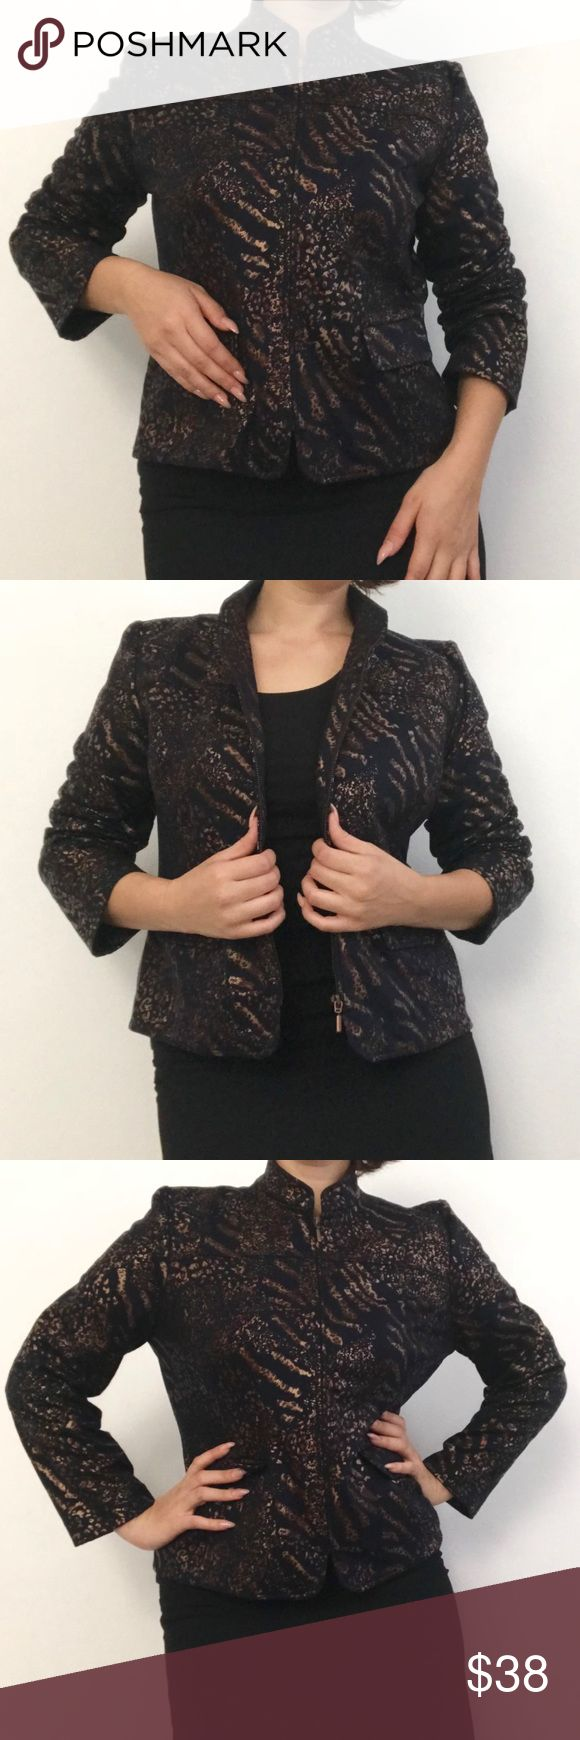 Alfred Dunner Jacket Top Zip Up Blazer Excellent condition Alfred Dunner bronze and black jacket blazer zip-up top. Animal print jacket. Mandarin collar. Alfred Dunner Jackets & Coats